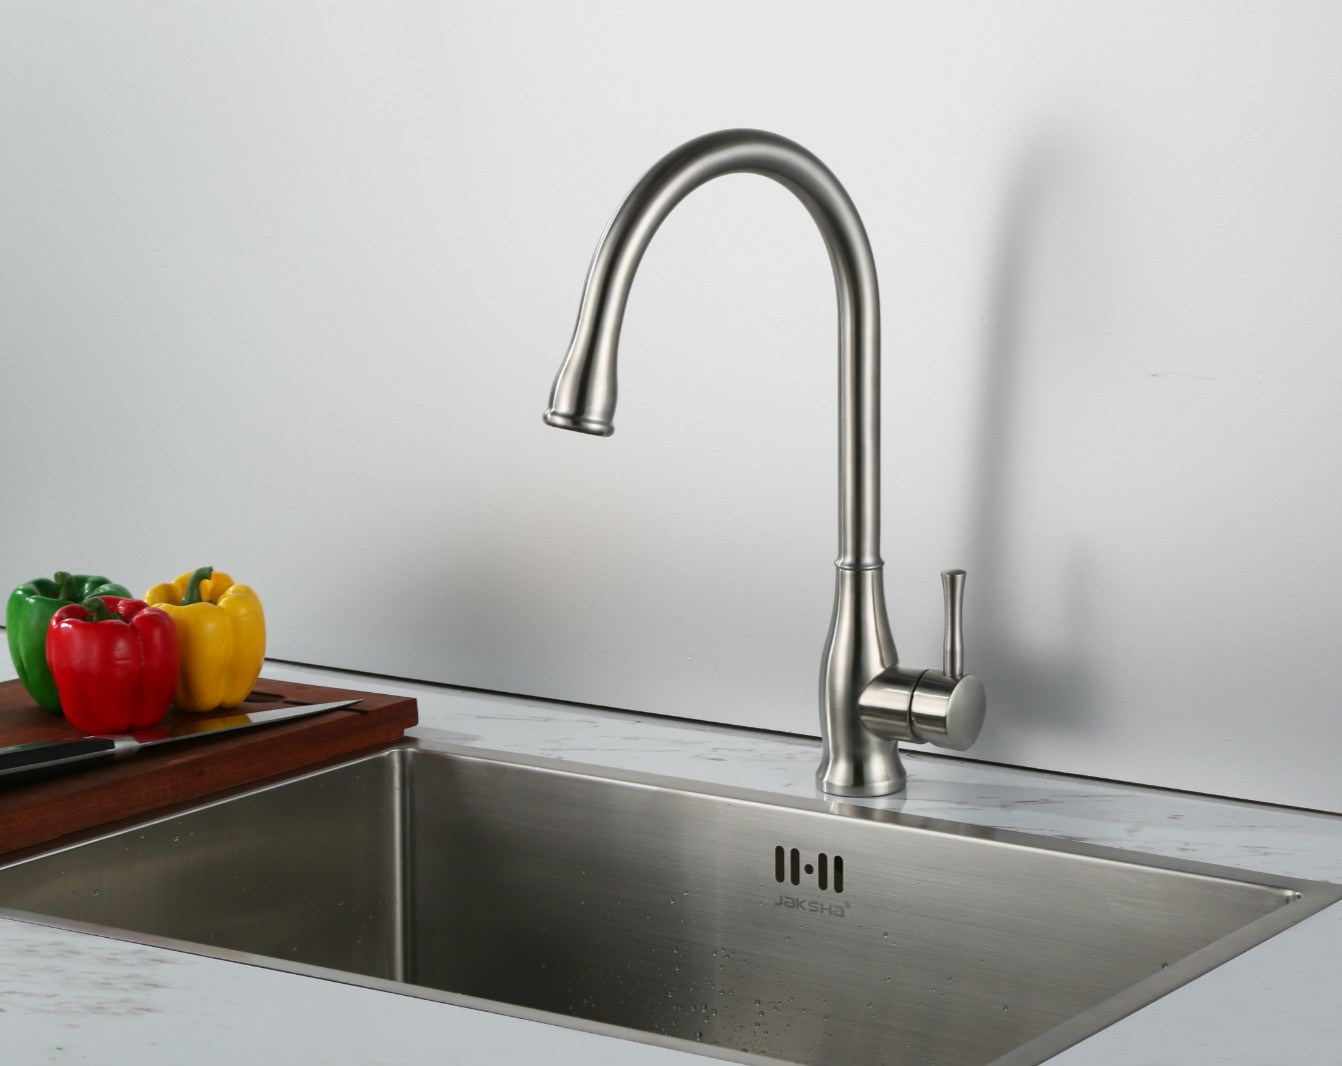 Wotai Stainless Steel Material Single Lever Kitchen Sink Faucet